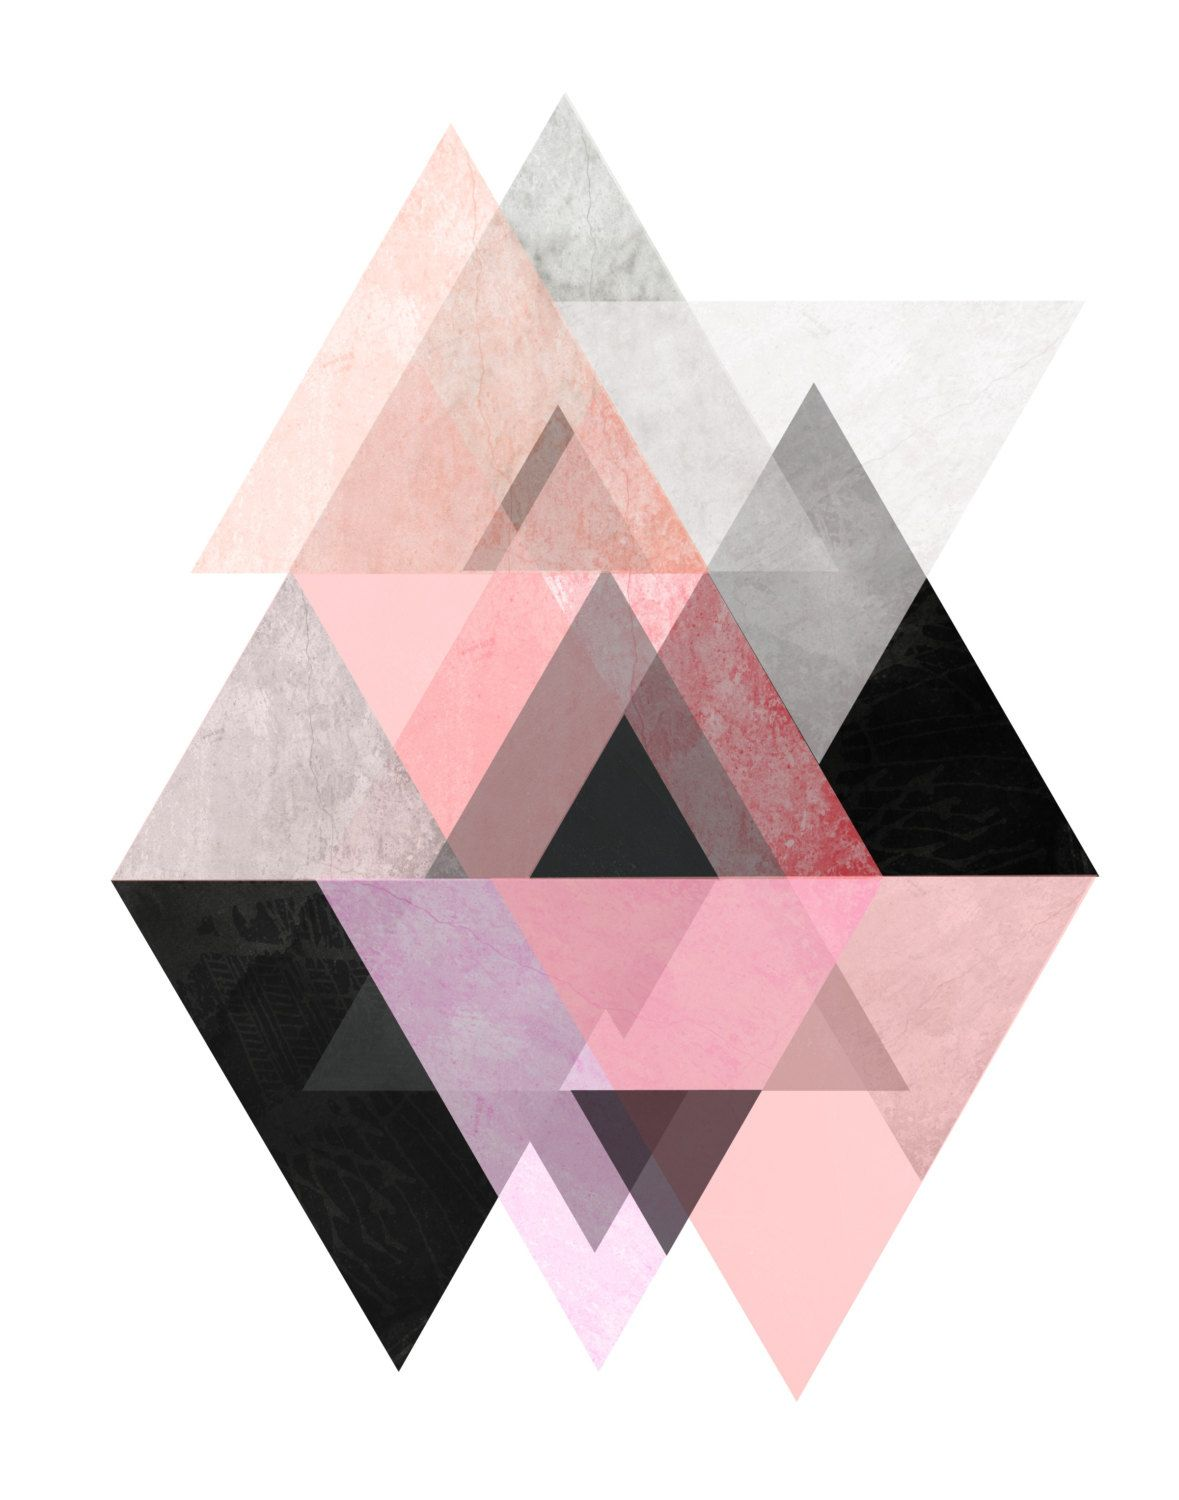 triangle wall art pink and grey art scandinavian design geometric